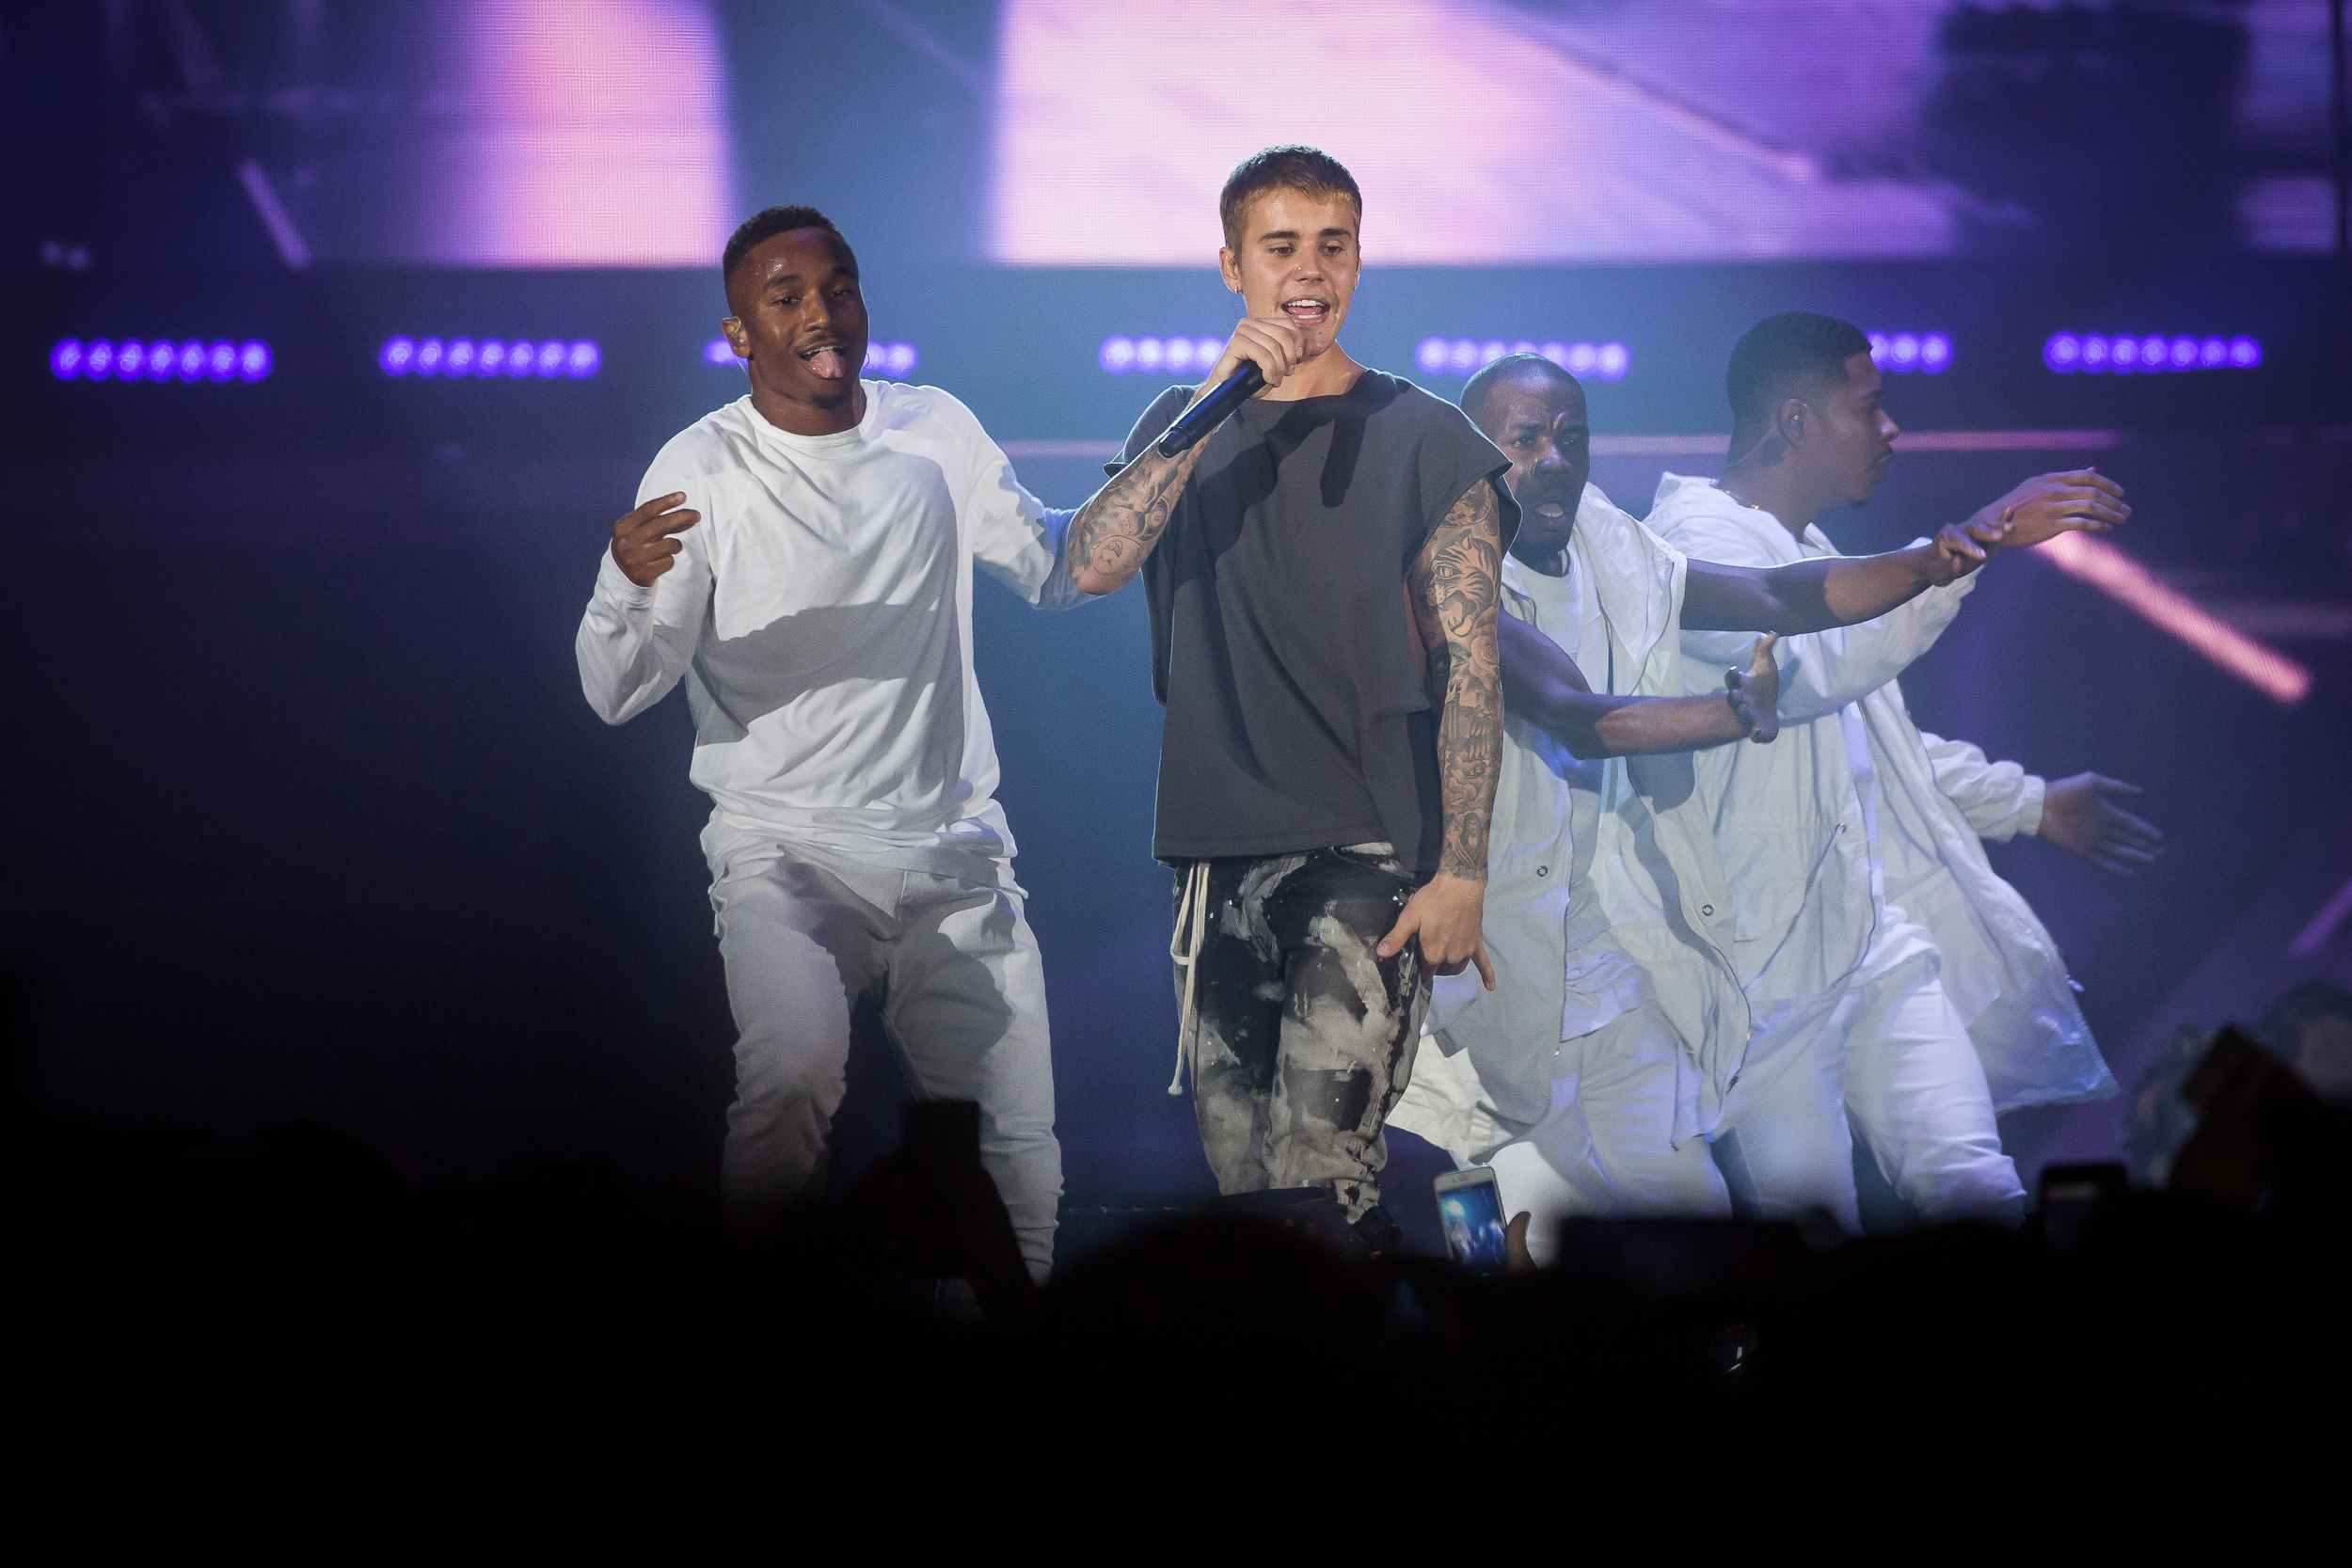 Justin Bieber at Telenor Arena, Oslo